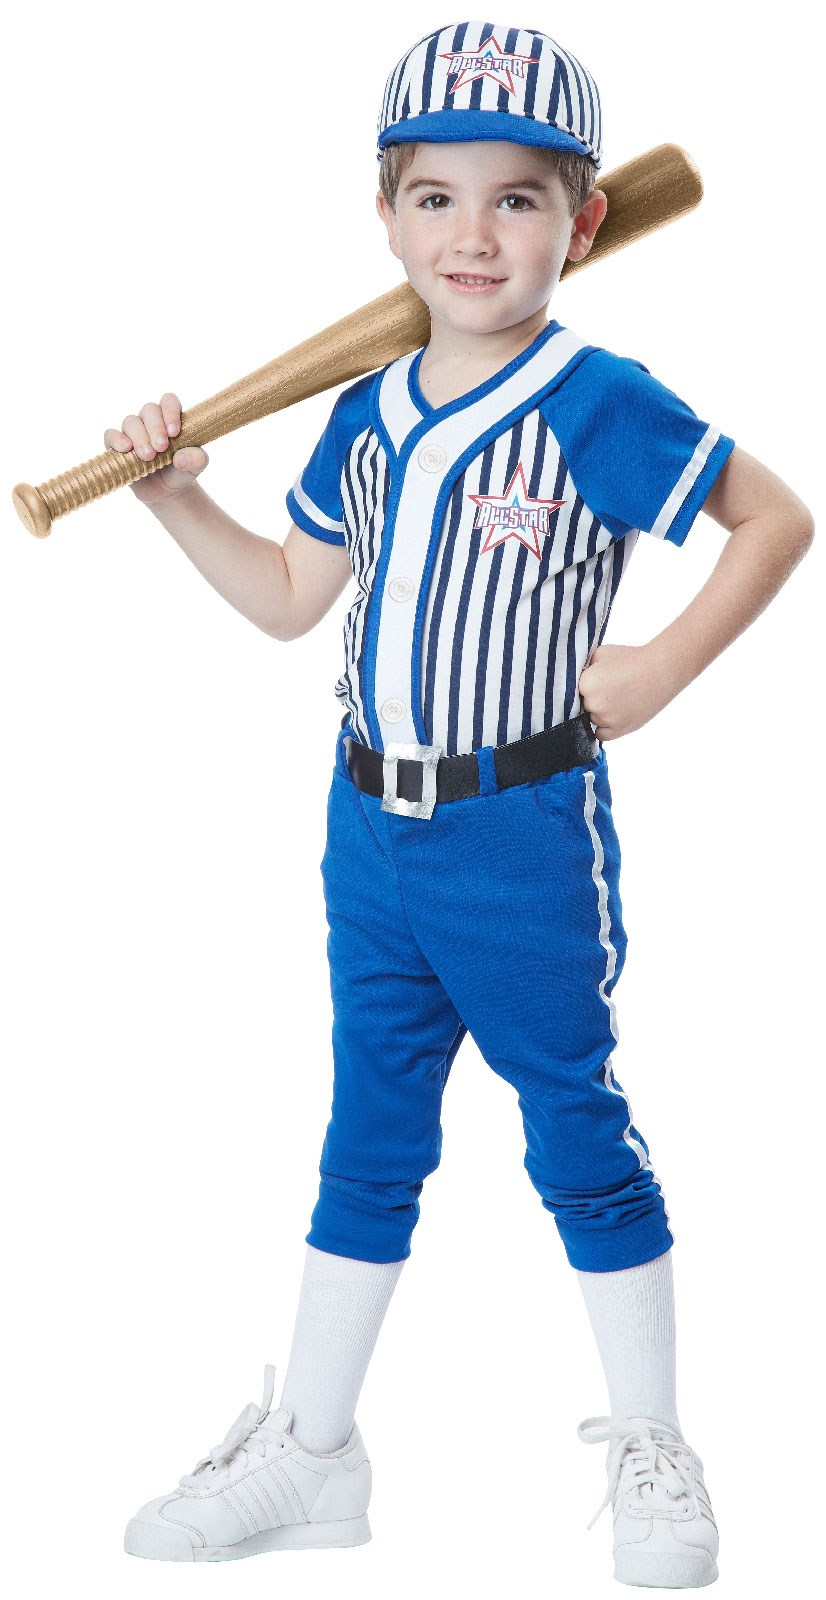 Boys Baseball Player Costume For Toddlers Buycostumes Com